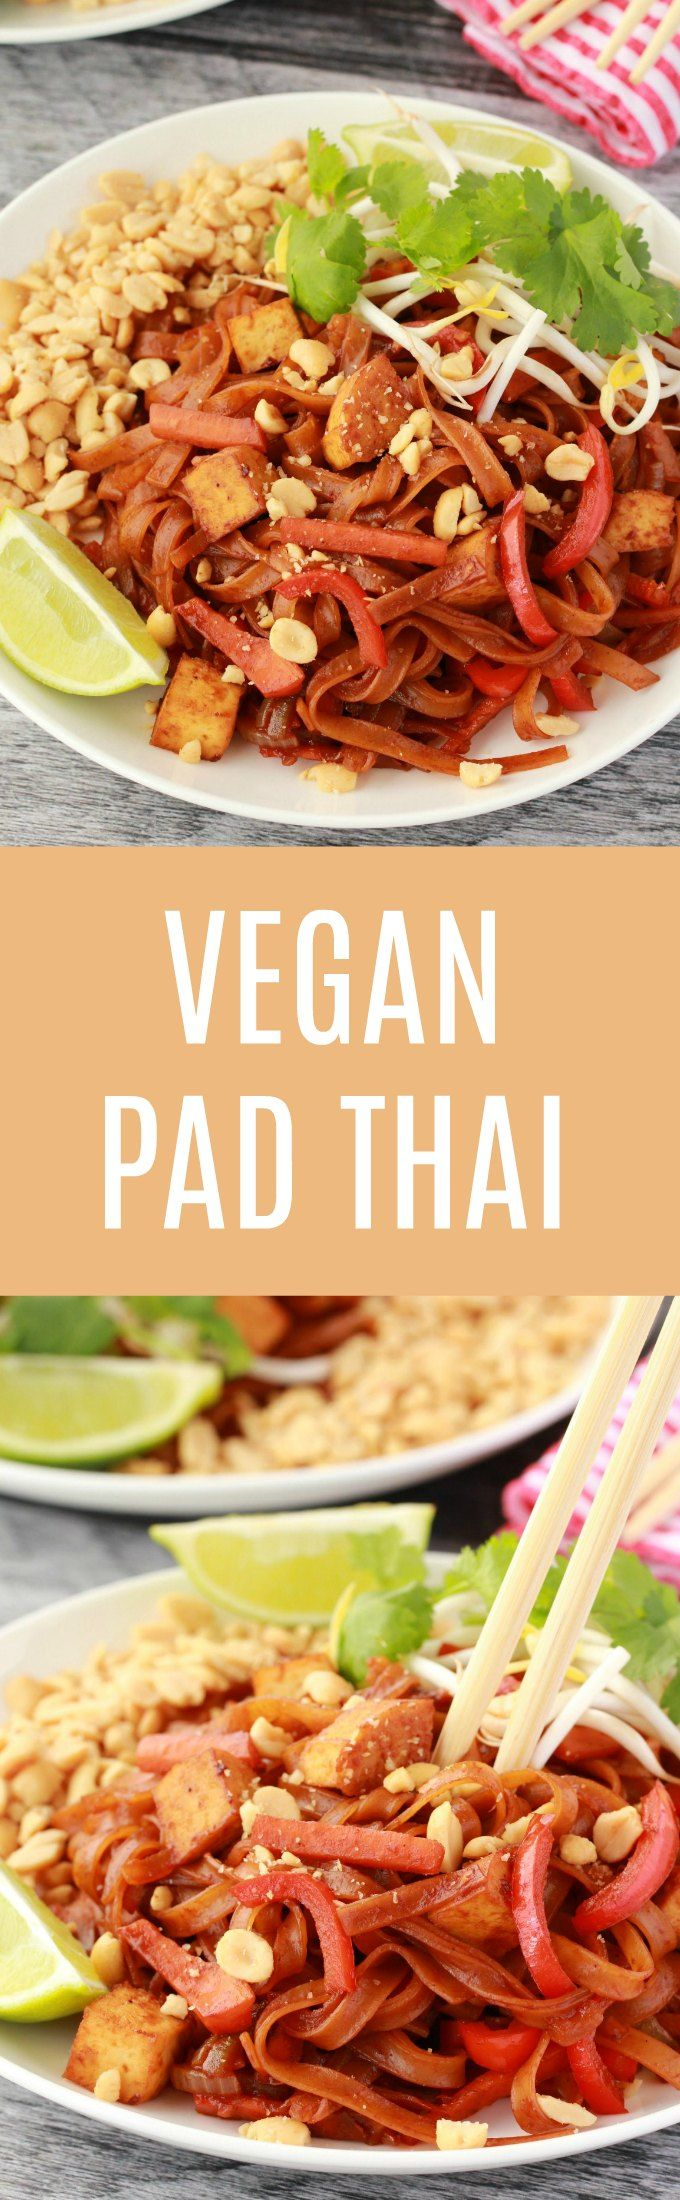 Deliciously flavorful vegan pad thai. This easy, colorful and filling dish has a fabulously authentic flavor, comes together in an hour or less and is gluten-free. #vegan #glutenfree #dairyfree #padthai #vegandinner | lovingitvegan.com